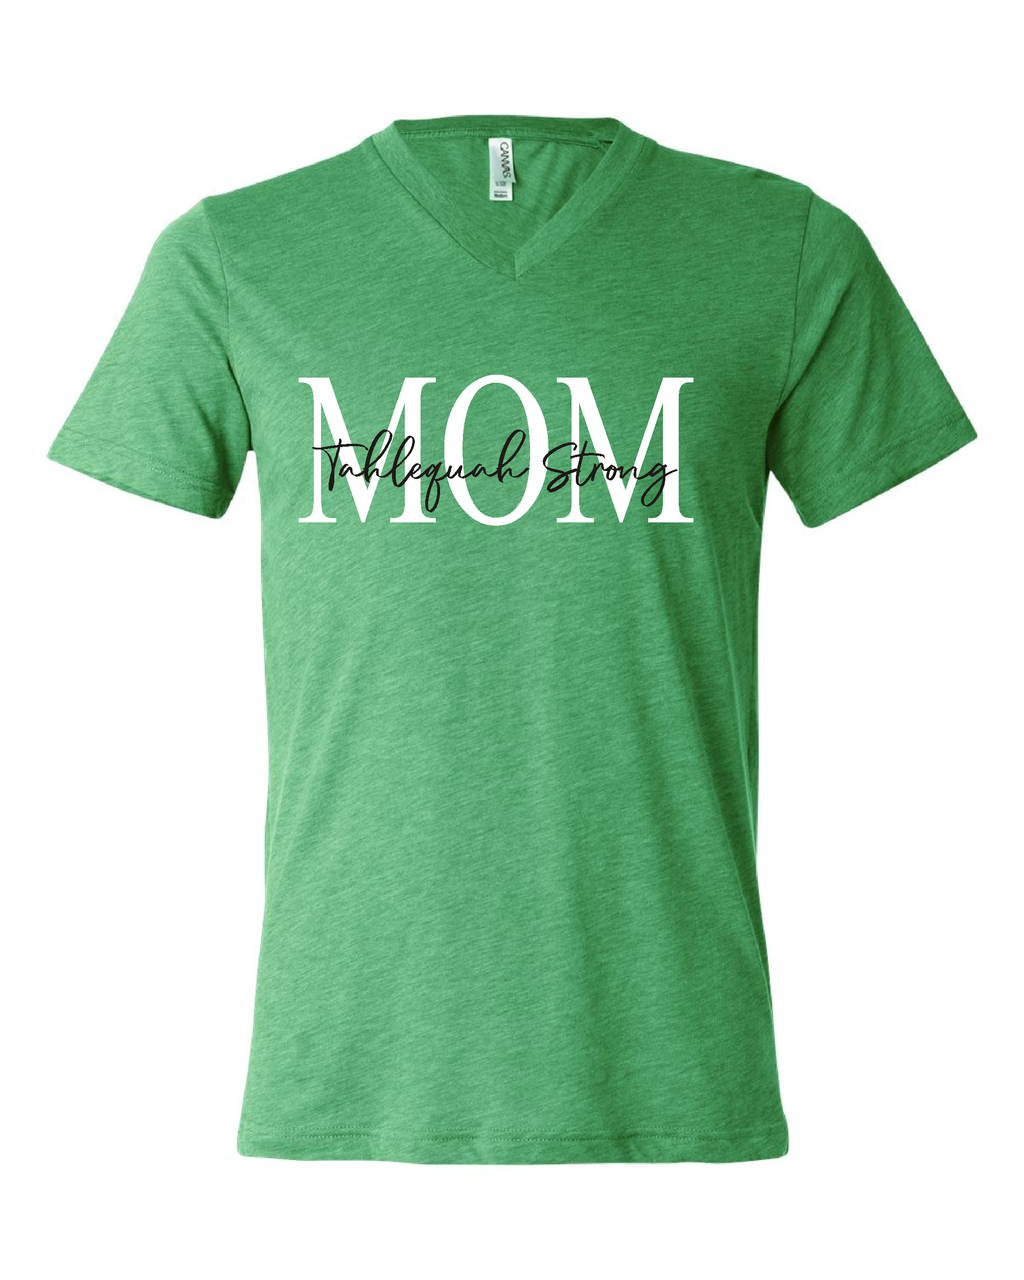 Tahlequah Strong MOM Green V-Neck